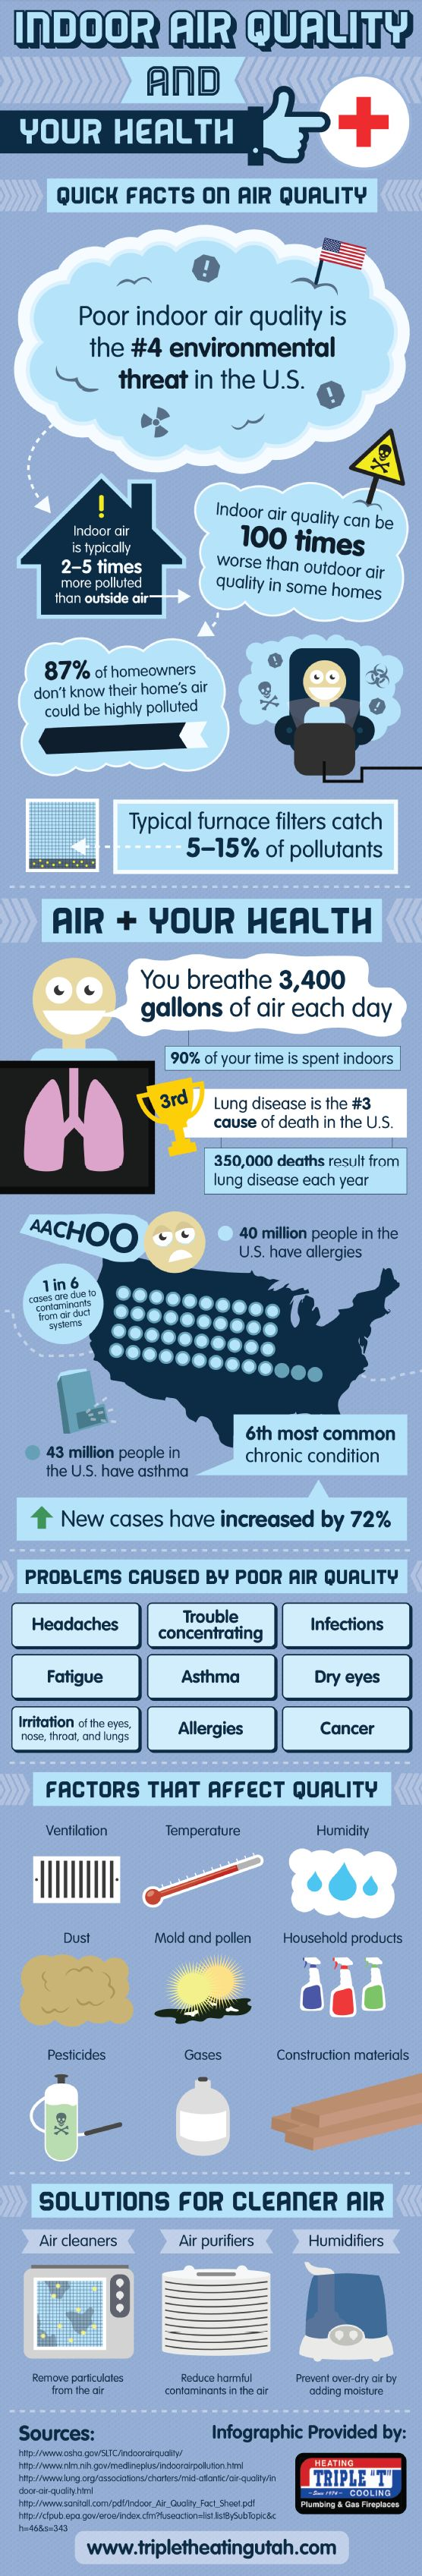 Car interior air quality - Indoor Air Quality Is A Major Health Threat In Homes And Buildings Across America Despite